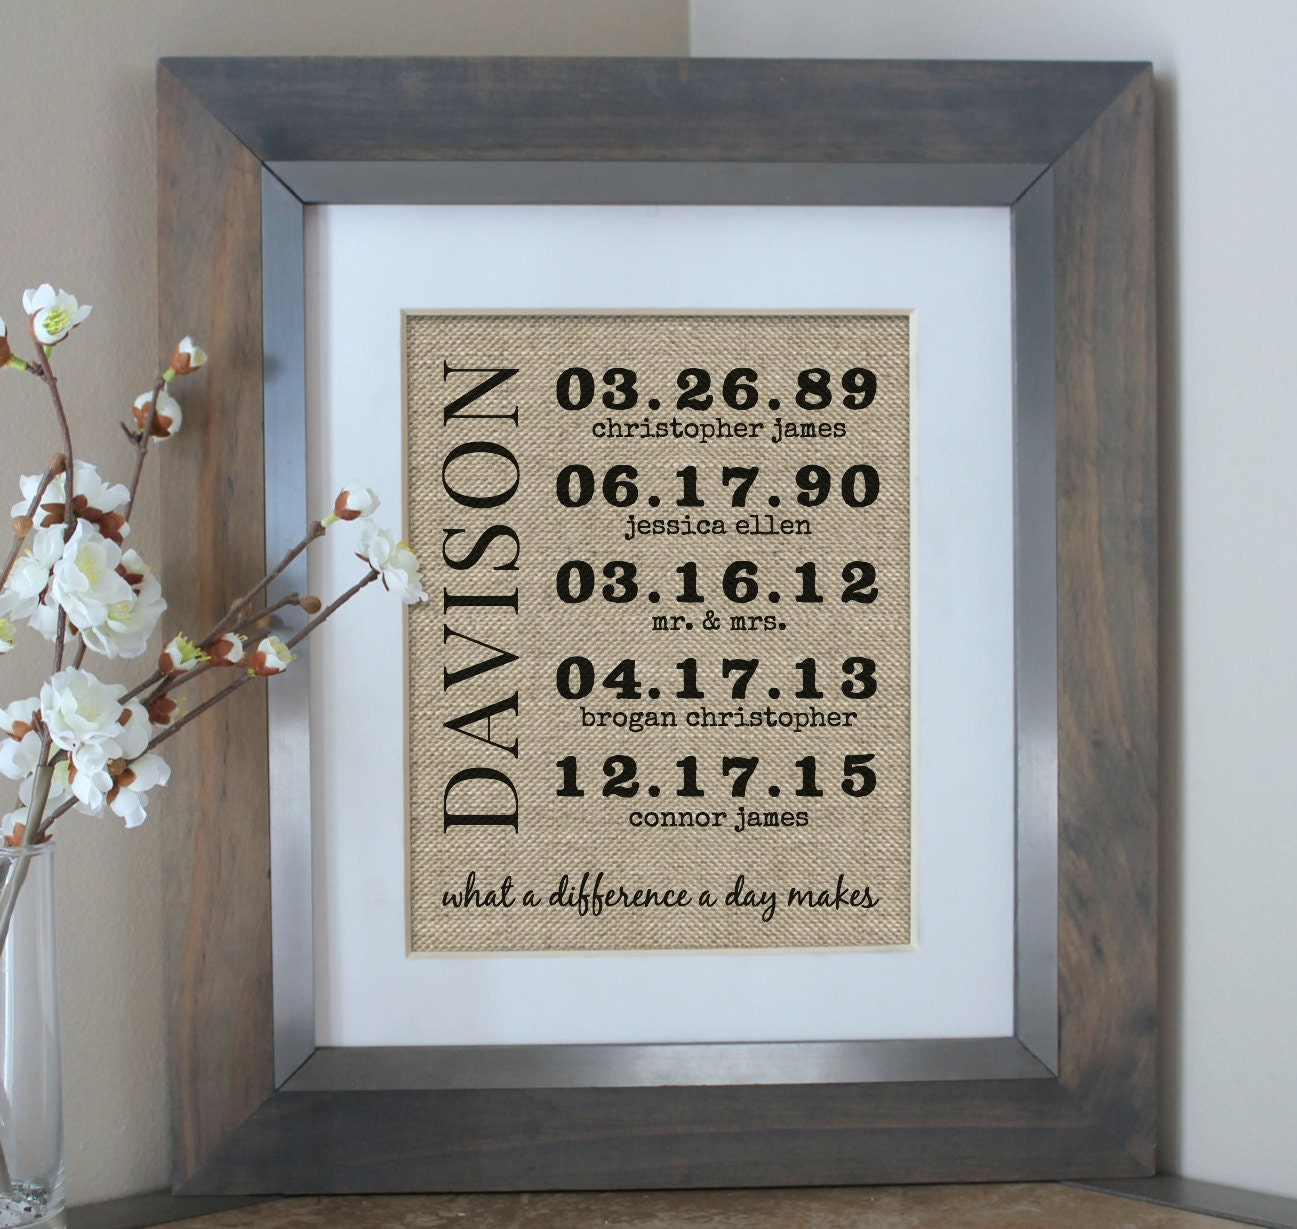 Personalised 50th Wedding Anniversary Gifts: 50th Anniversary Gifts Personalized Family Dates